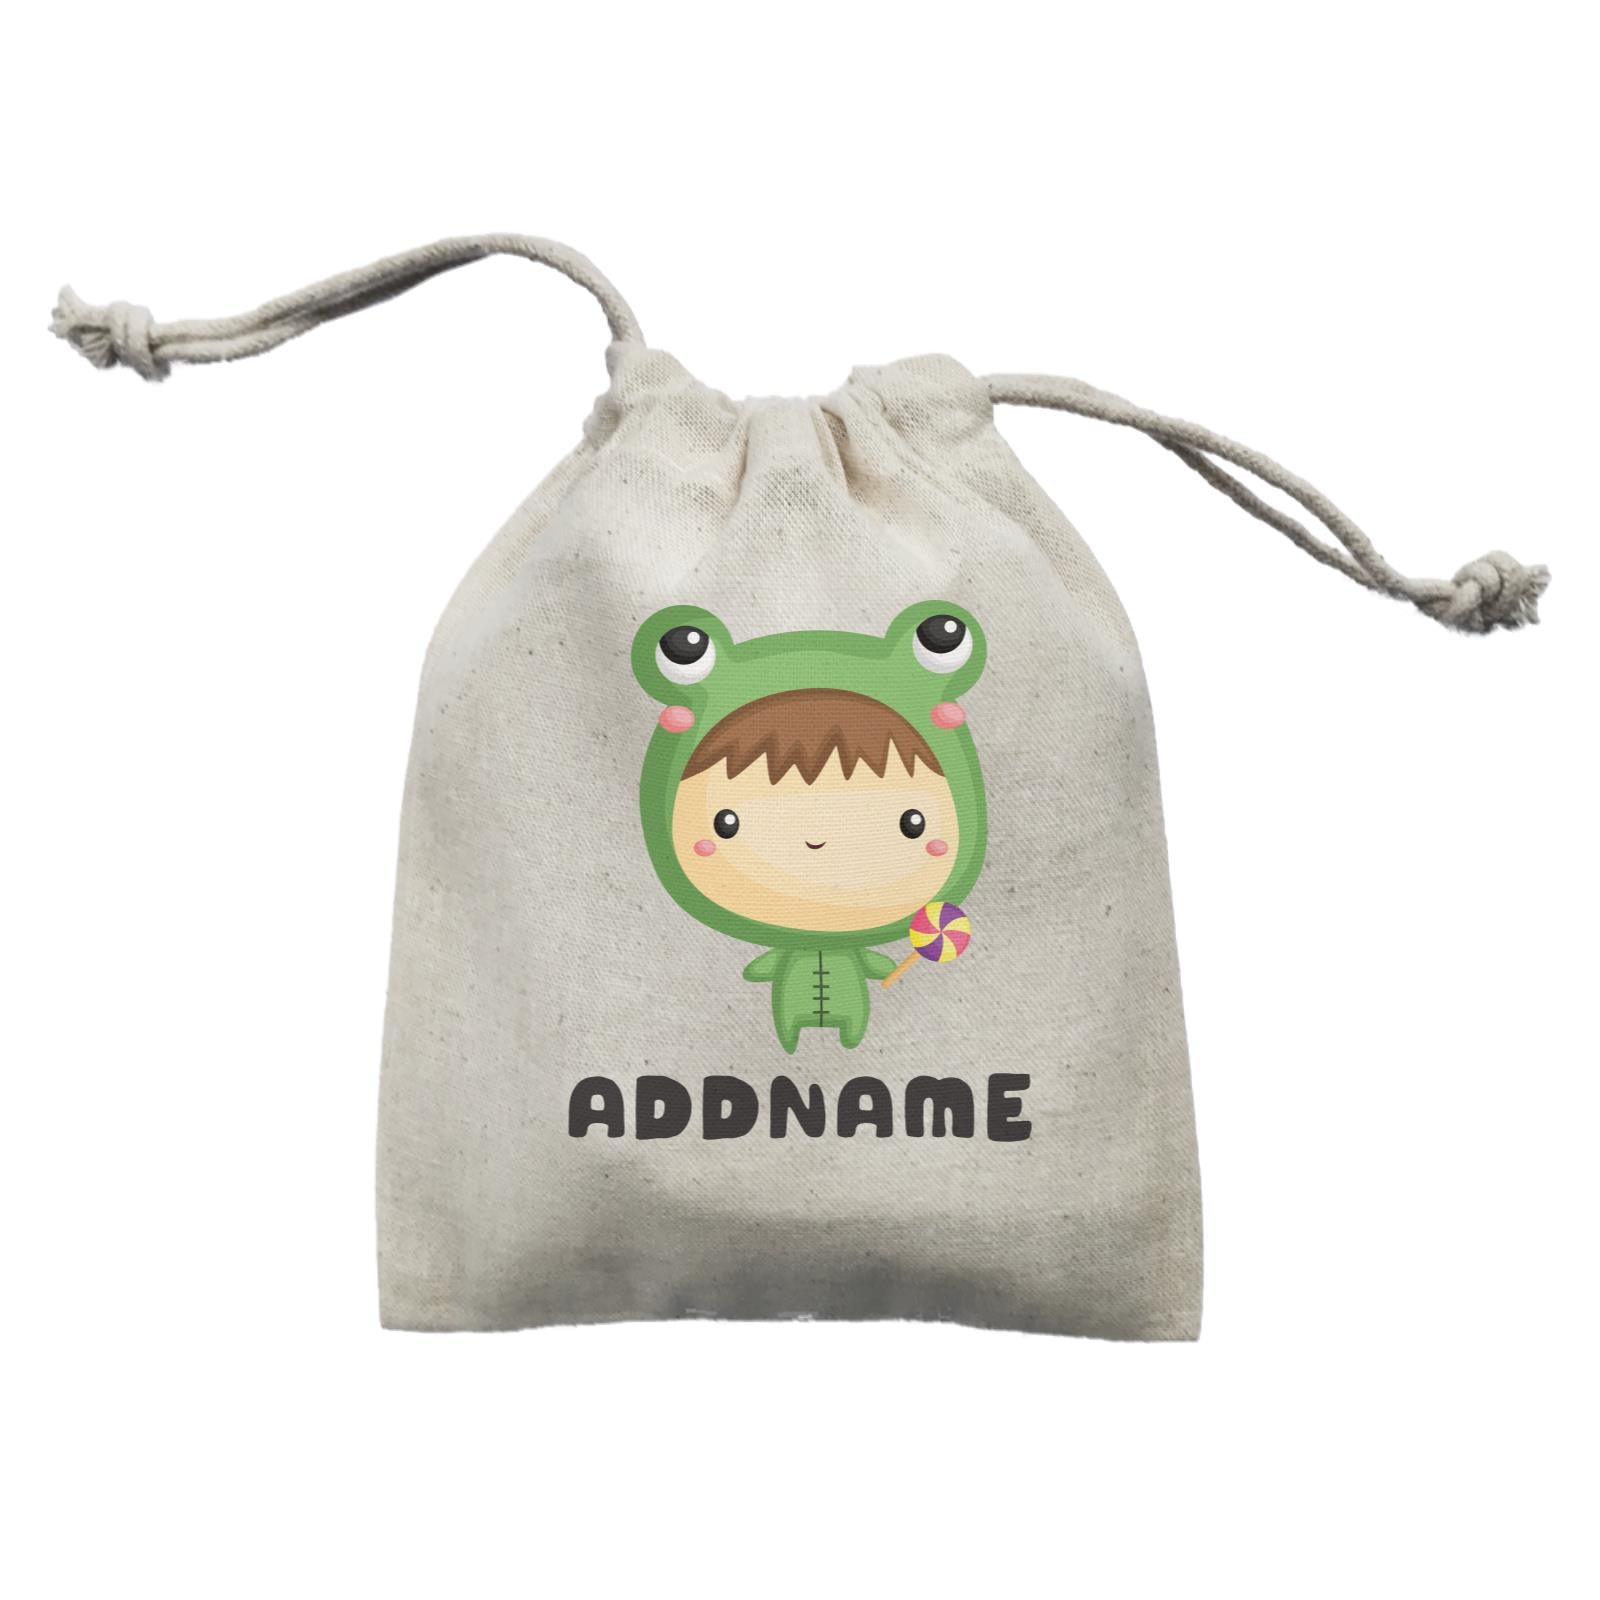 Birthday Frog Baby Boy Wearing Frog Suit Holding Lolipop Addname Mini Accessories Mini Pouch